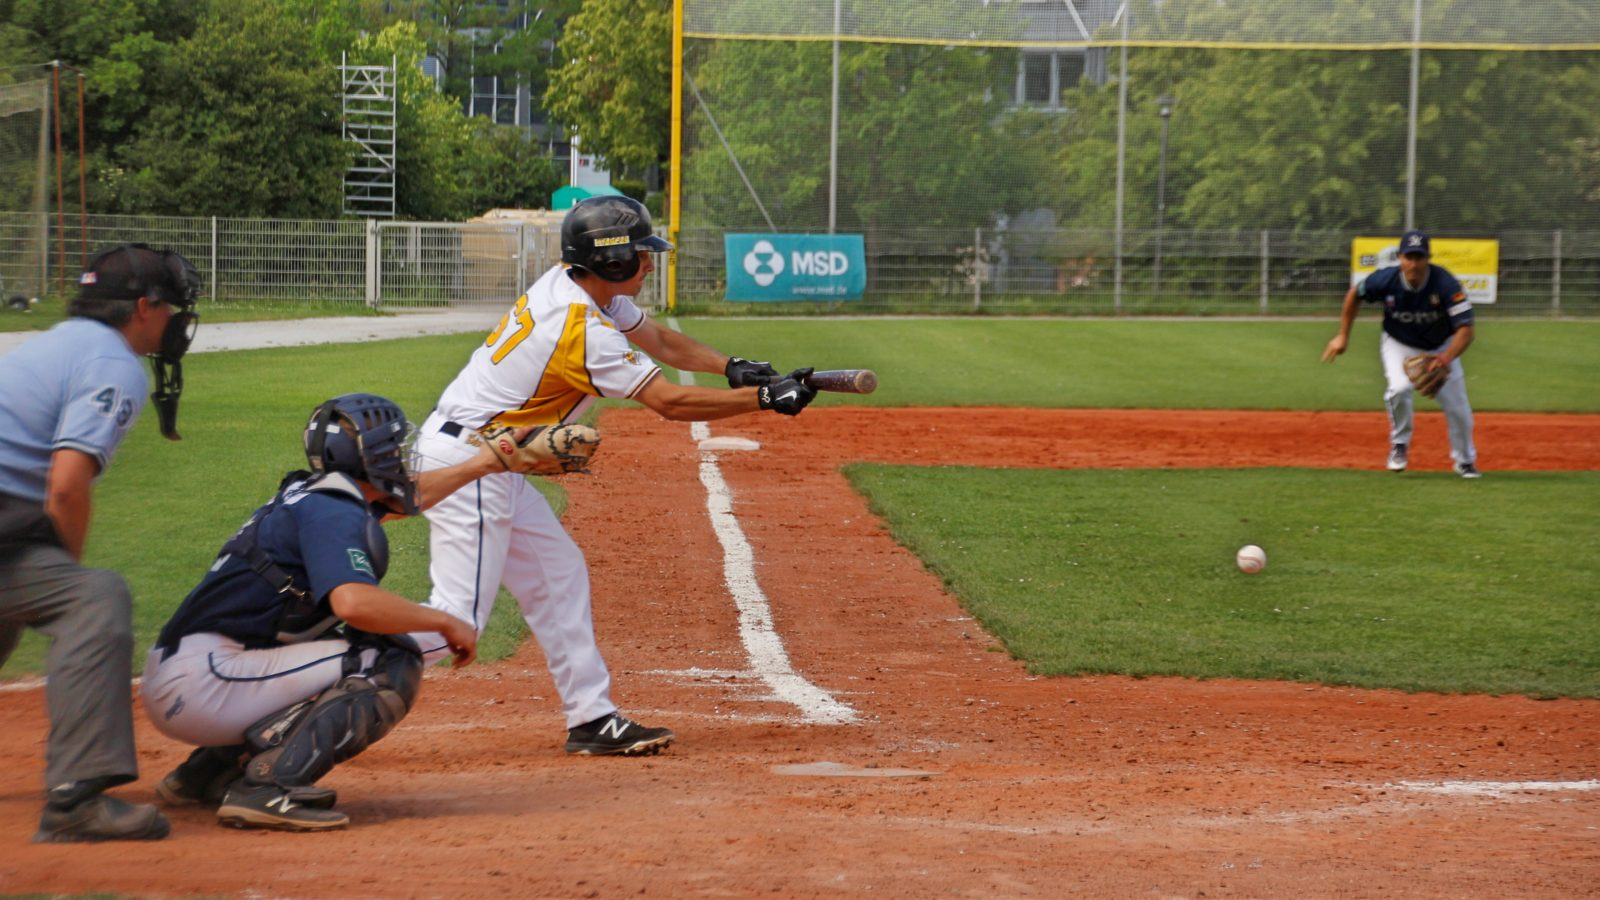 .... and the sacrifice bunt is perfectly executed, advancing the runner -- munichFOTO / Jeffrey Ely